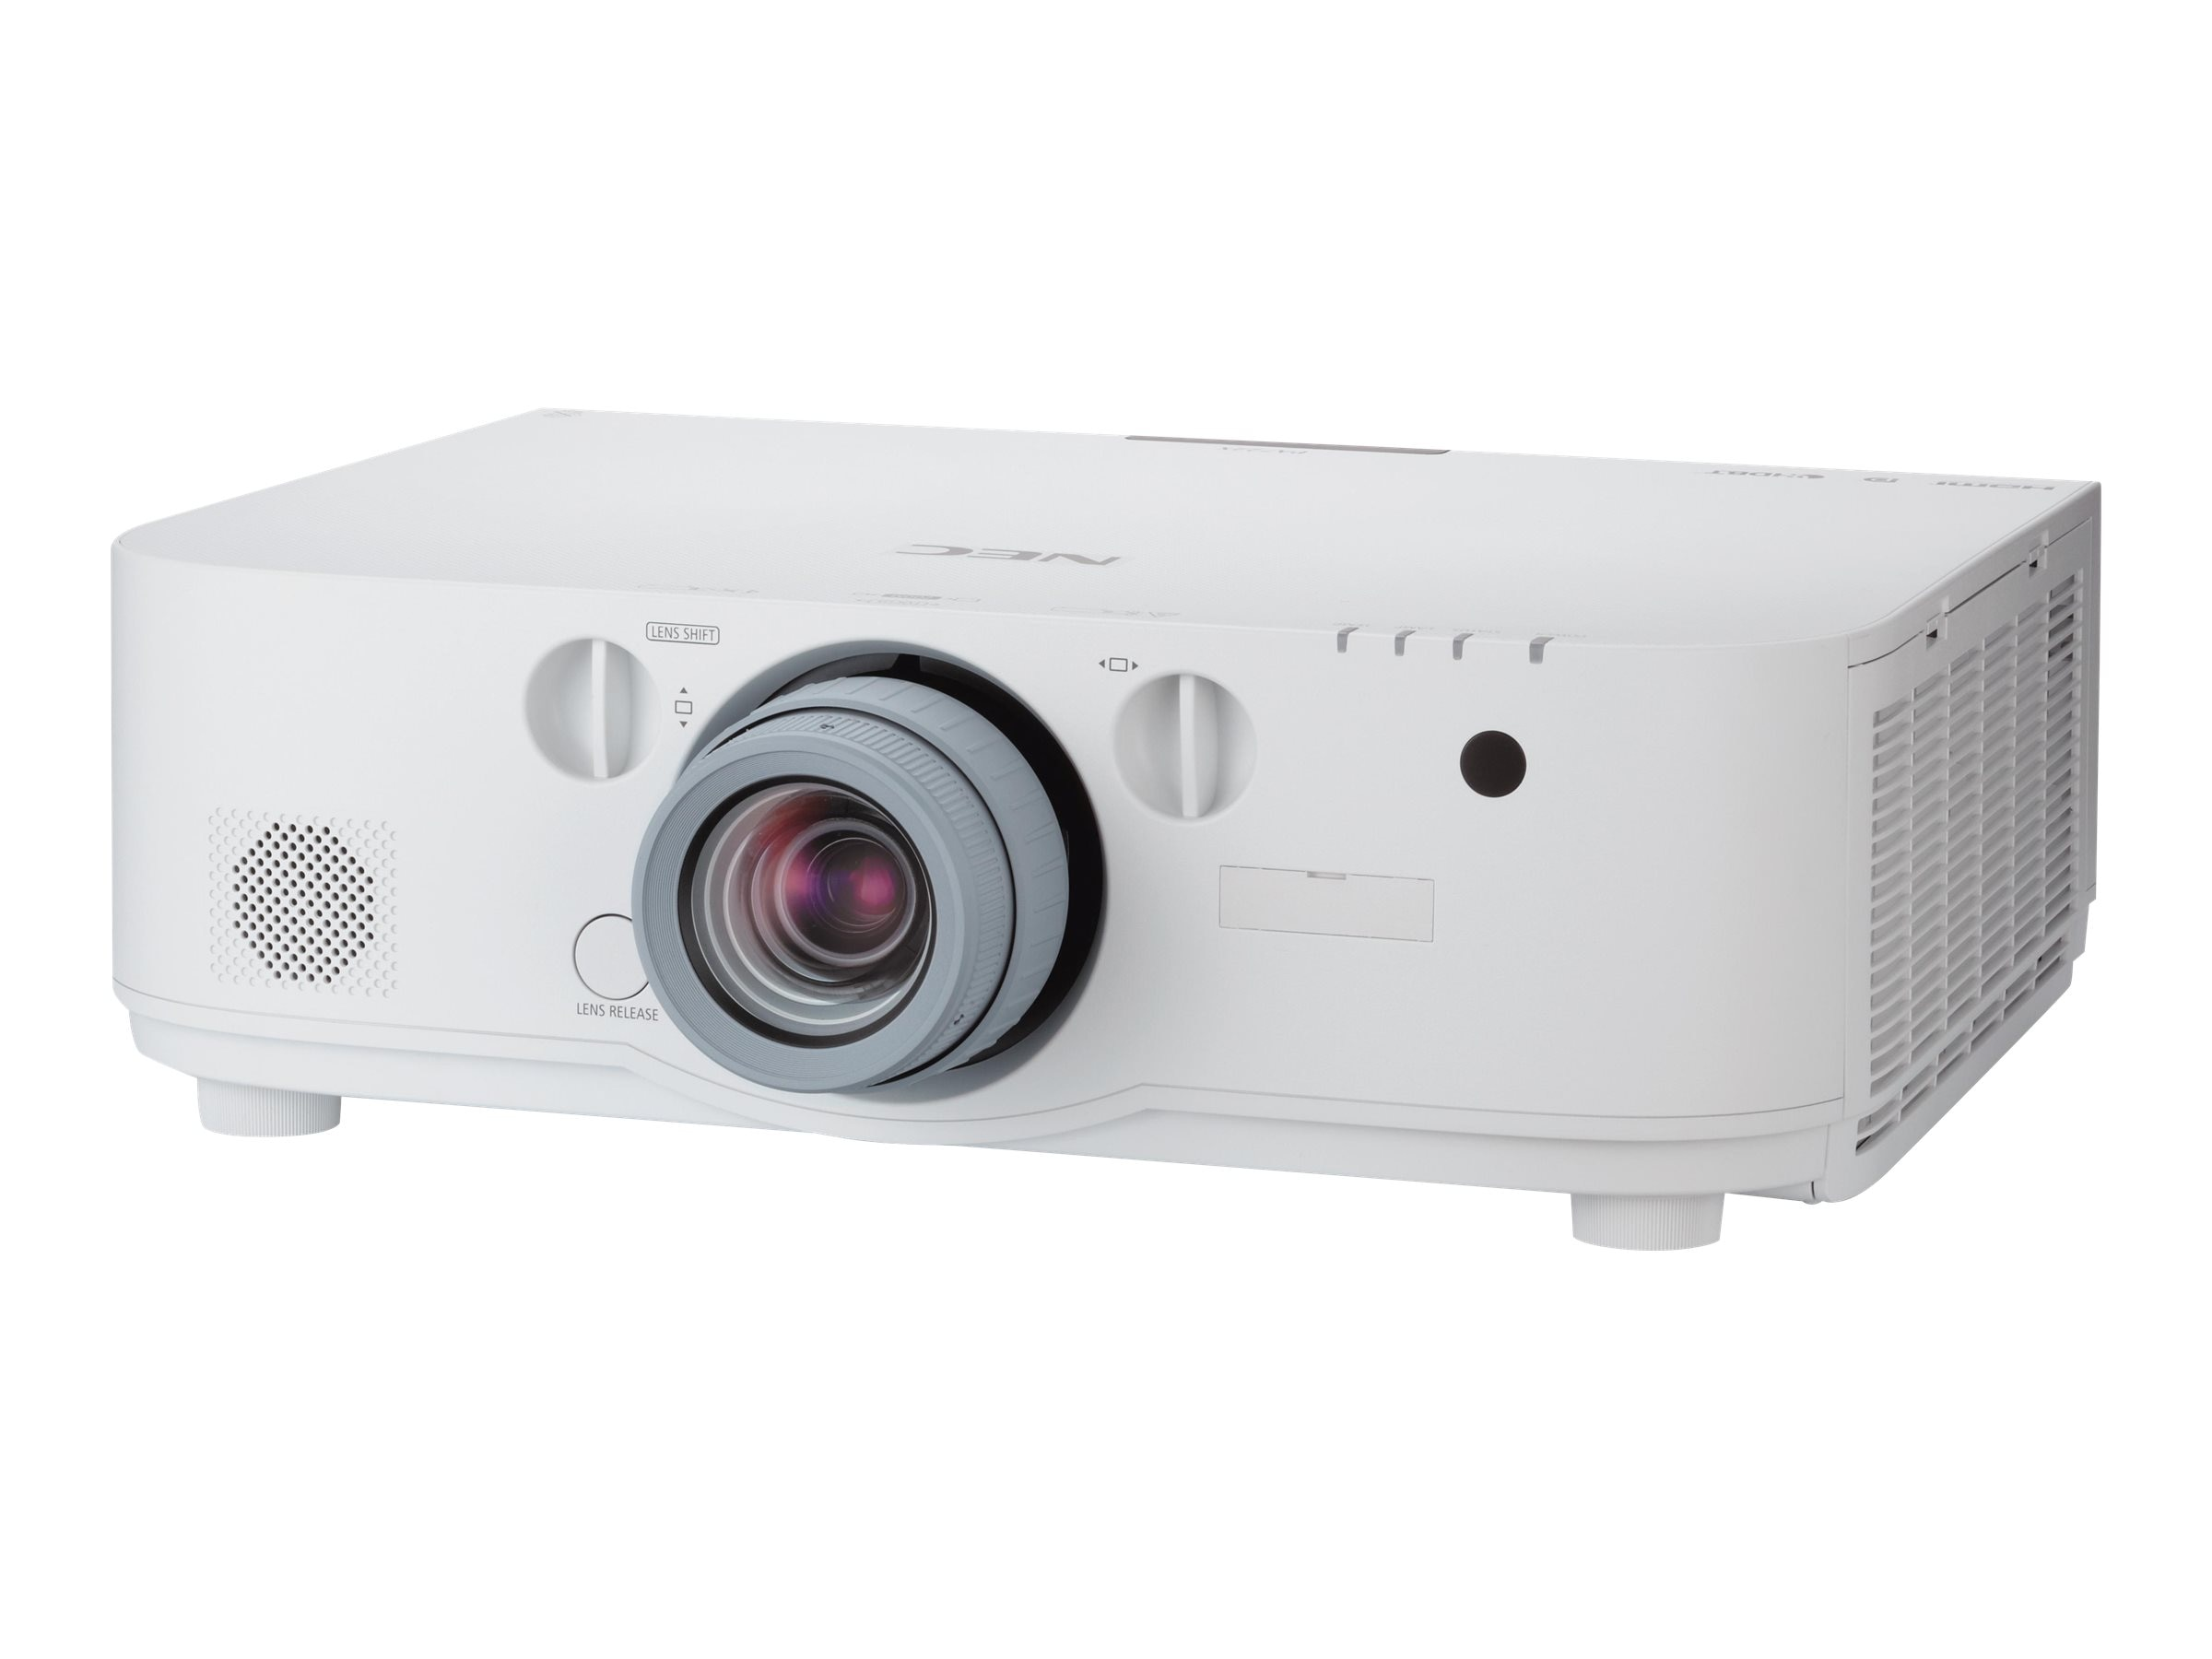 NEC PA521U WXGA LCD Projector, 5200 Lumens, White with 1.5 – 3.0:1 Zoom Lens, NP-PA521U-13ZL